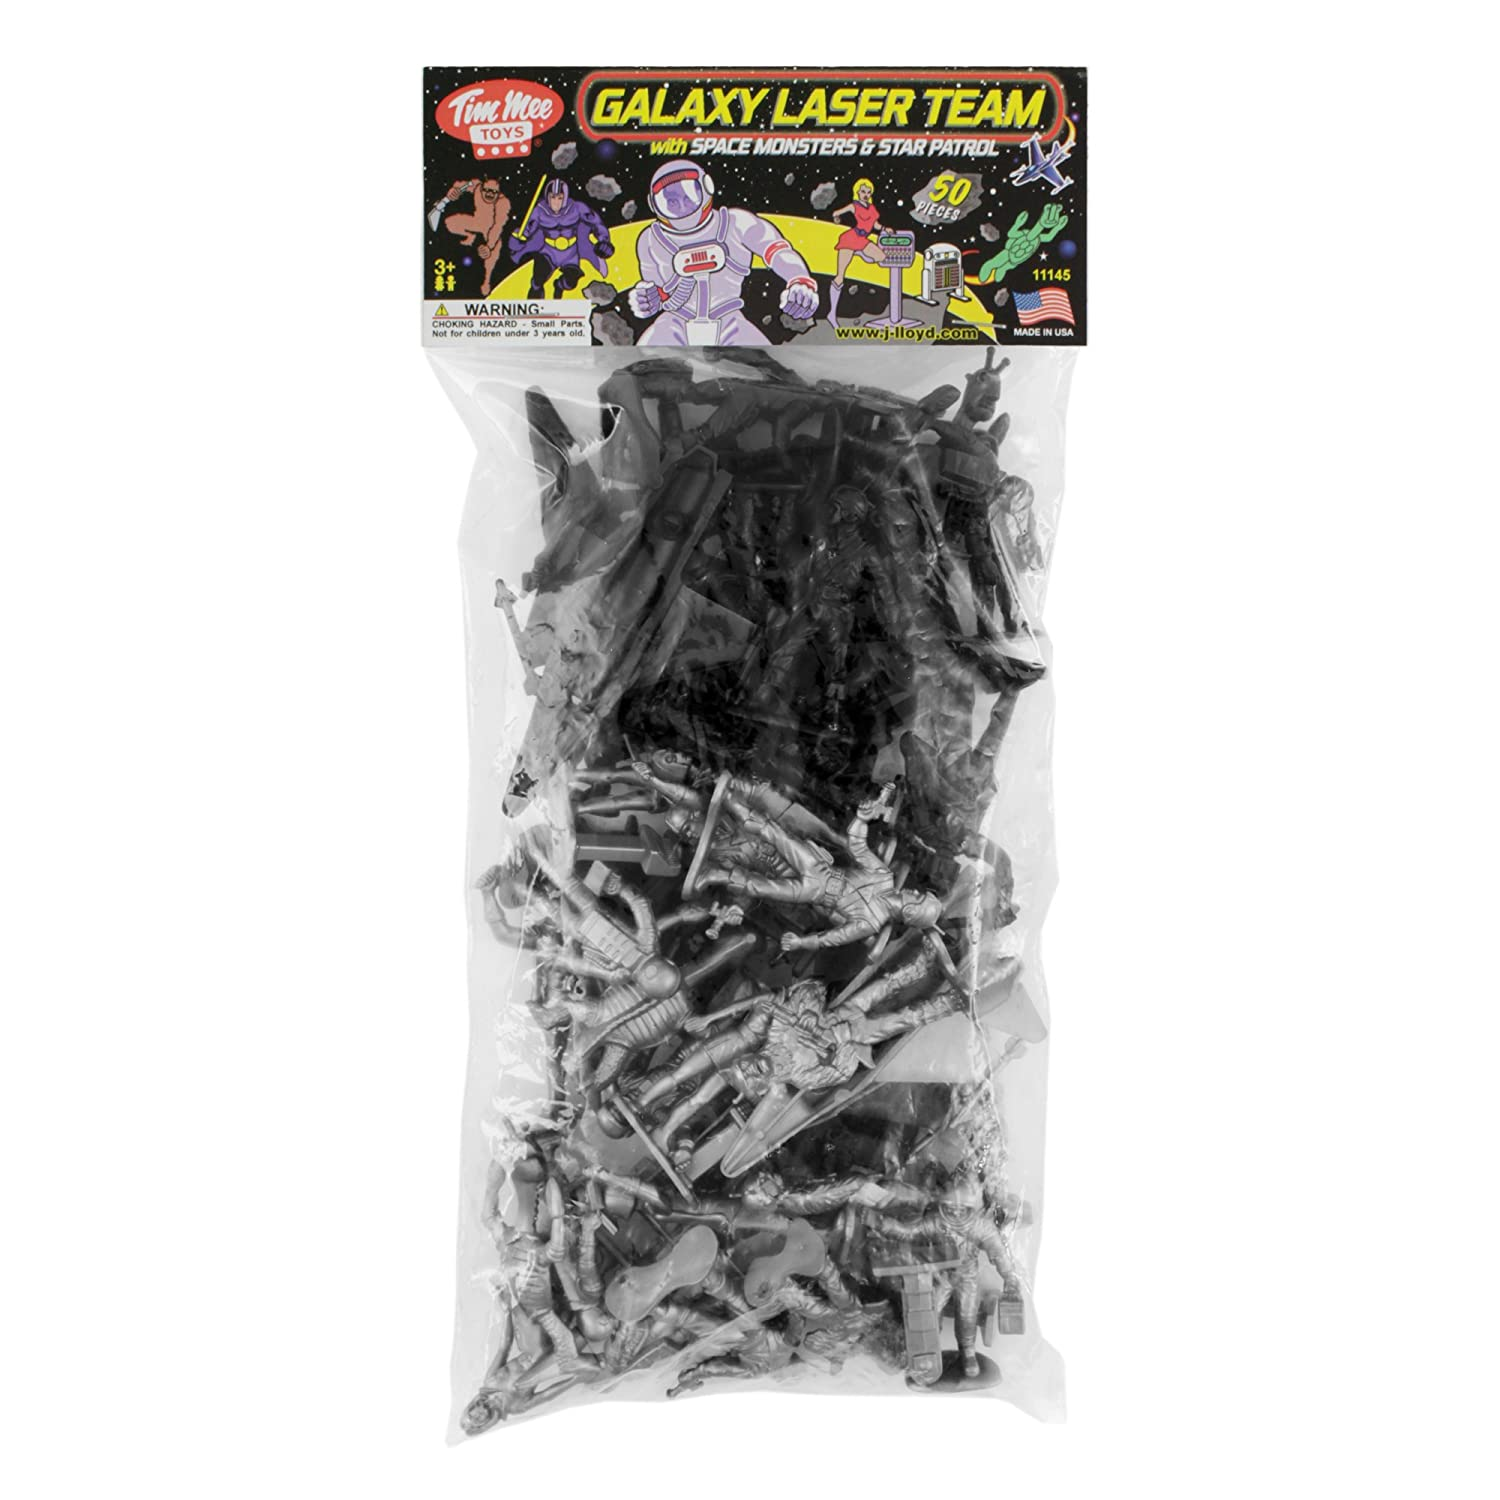 Made in USA Tim Mee Toy Black vs Silver 50pc Set TimMee Galaxy Laser Team Space Figures